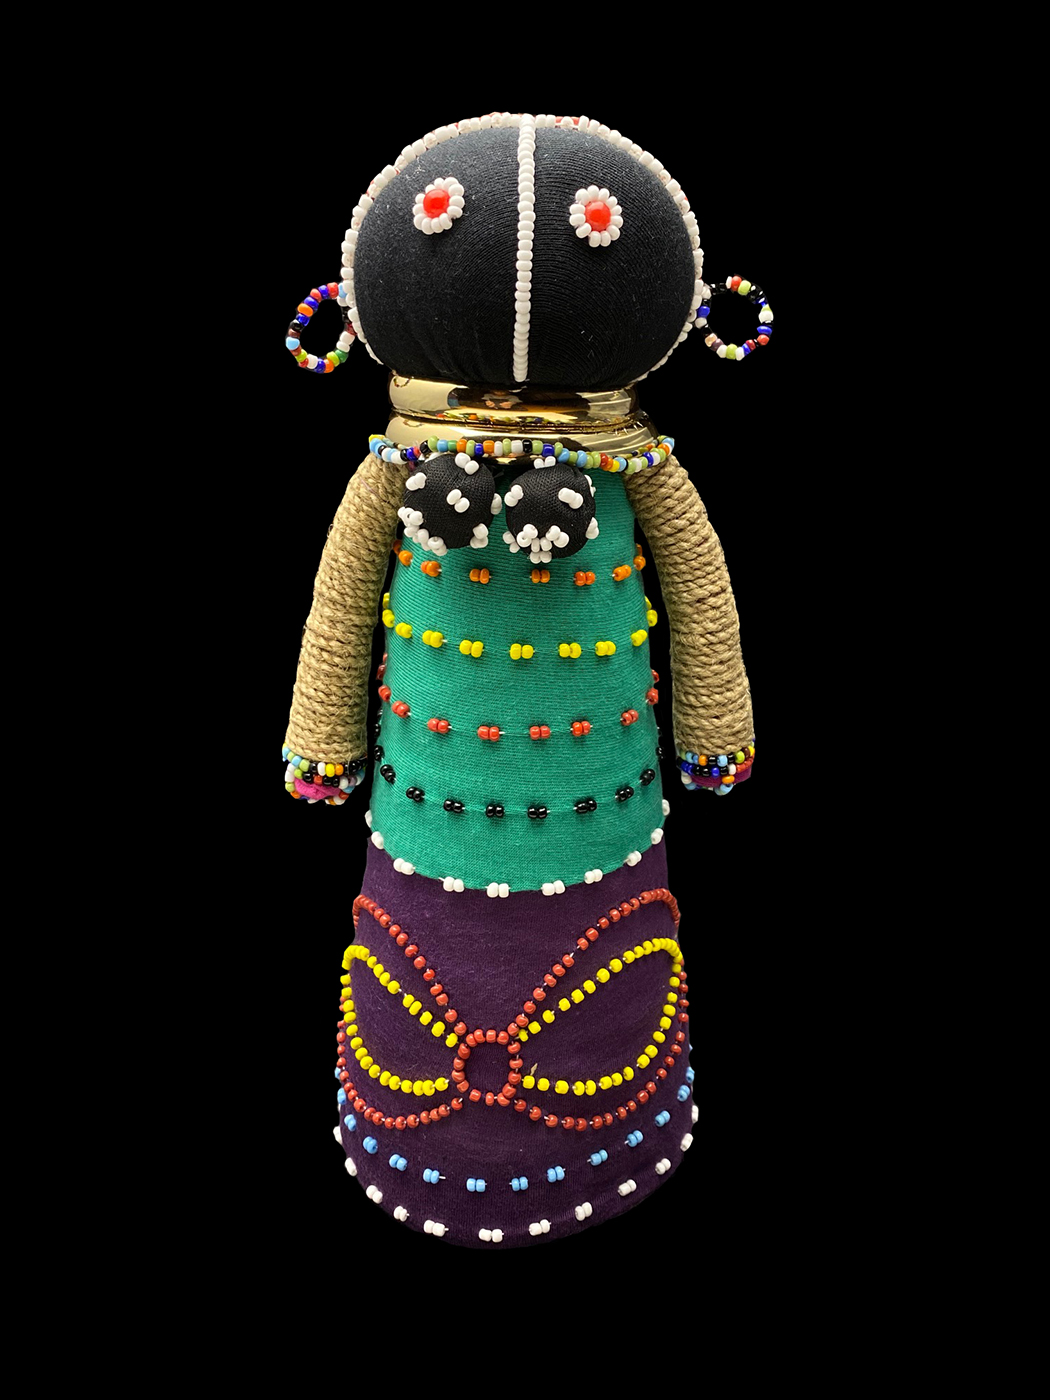 Ceremonial Courtship  Doll - Ndebele people, South Africa